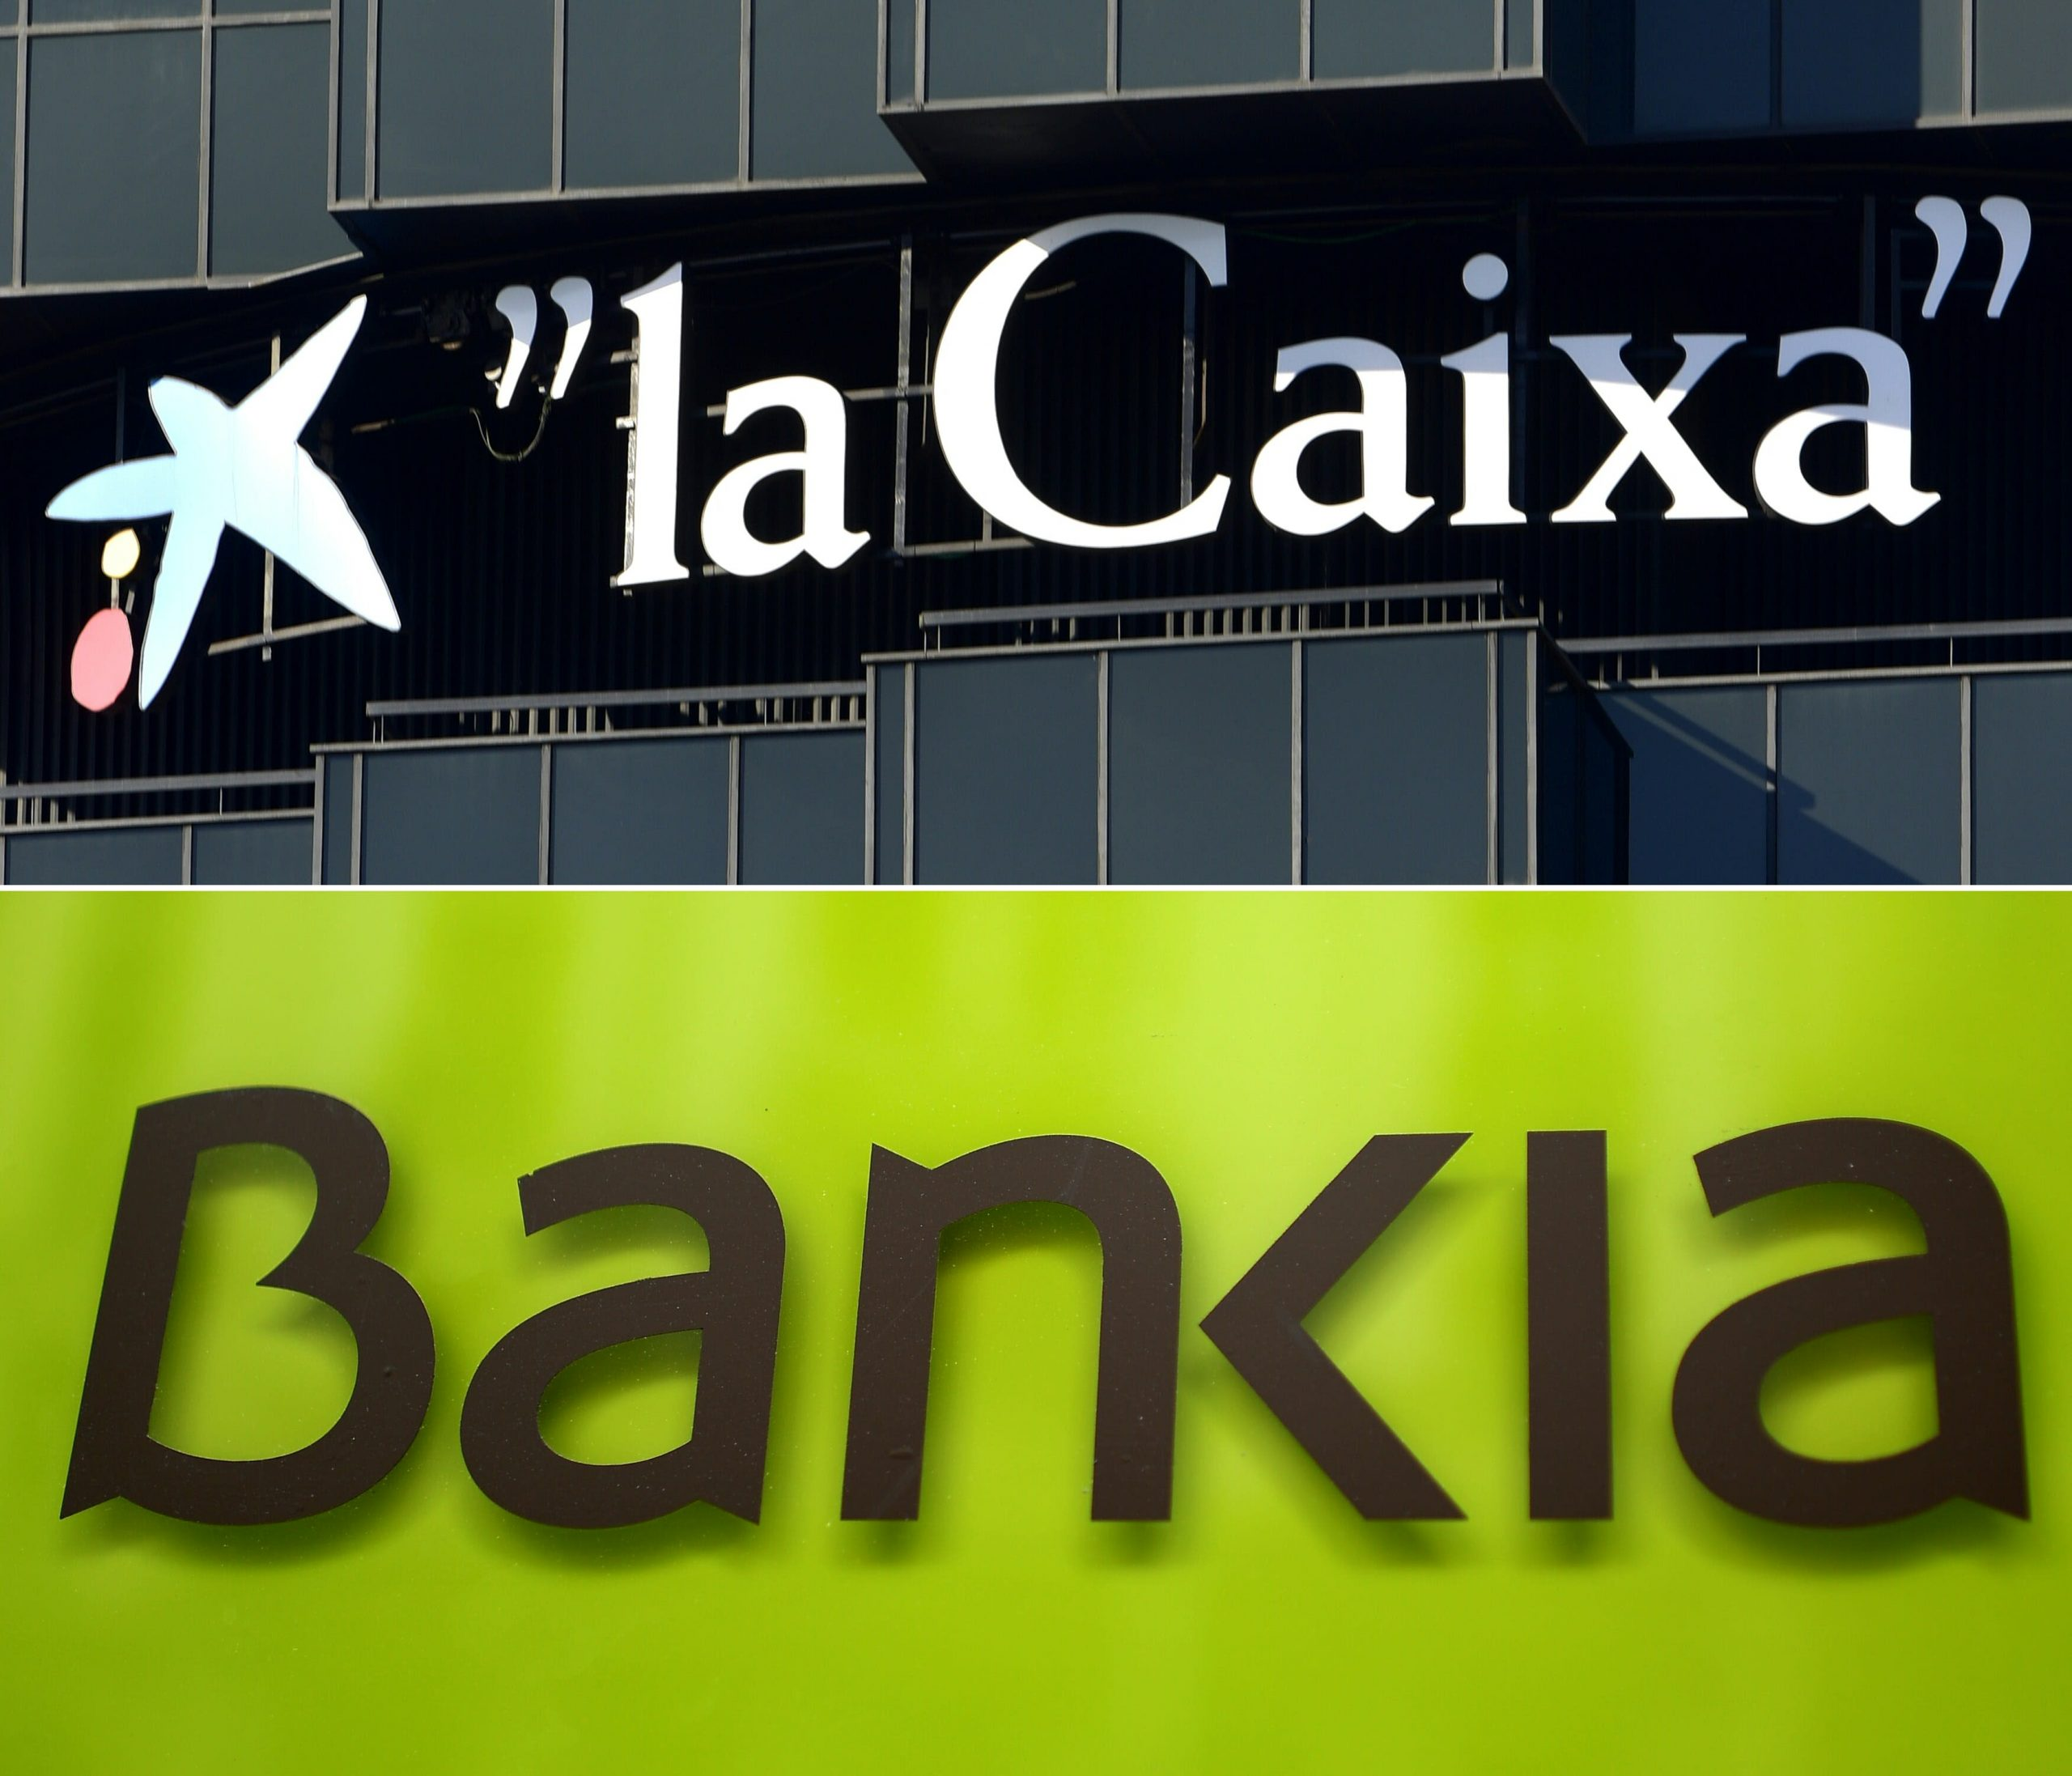 Keiza Bank and Bankia together form Spain's largest bank